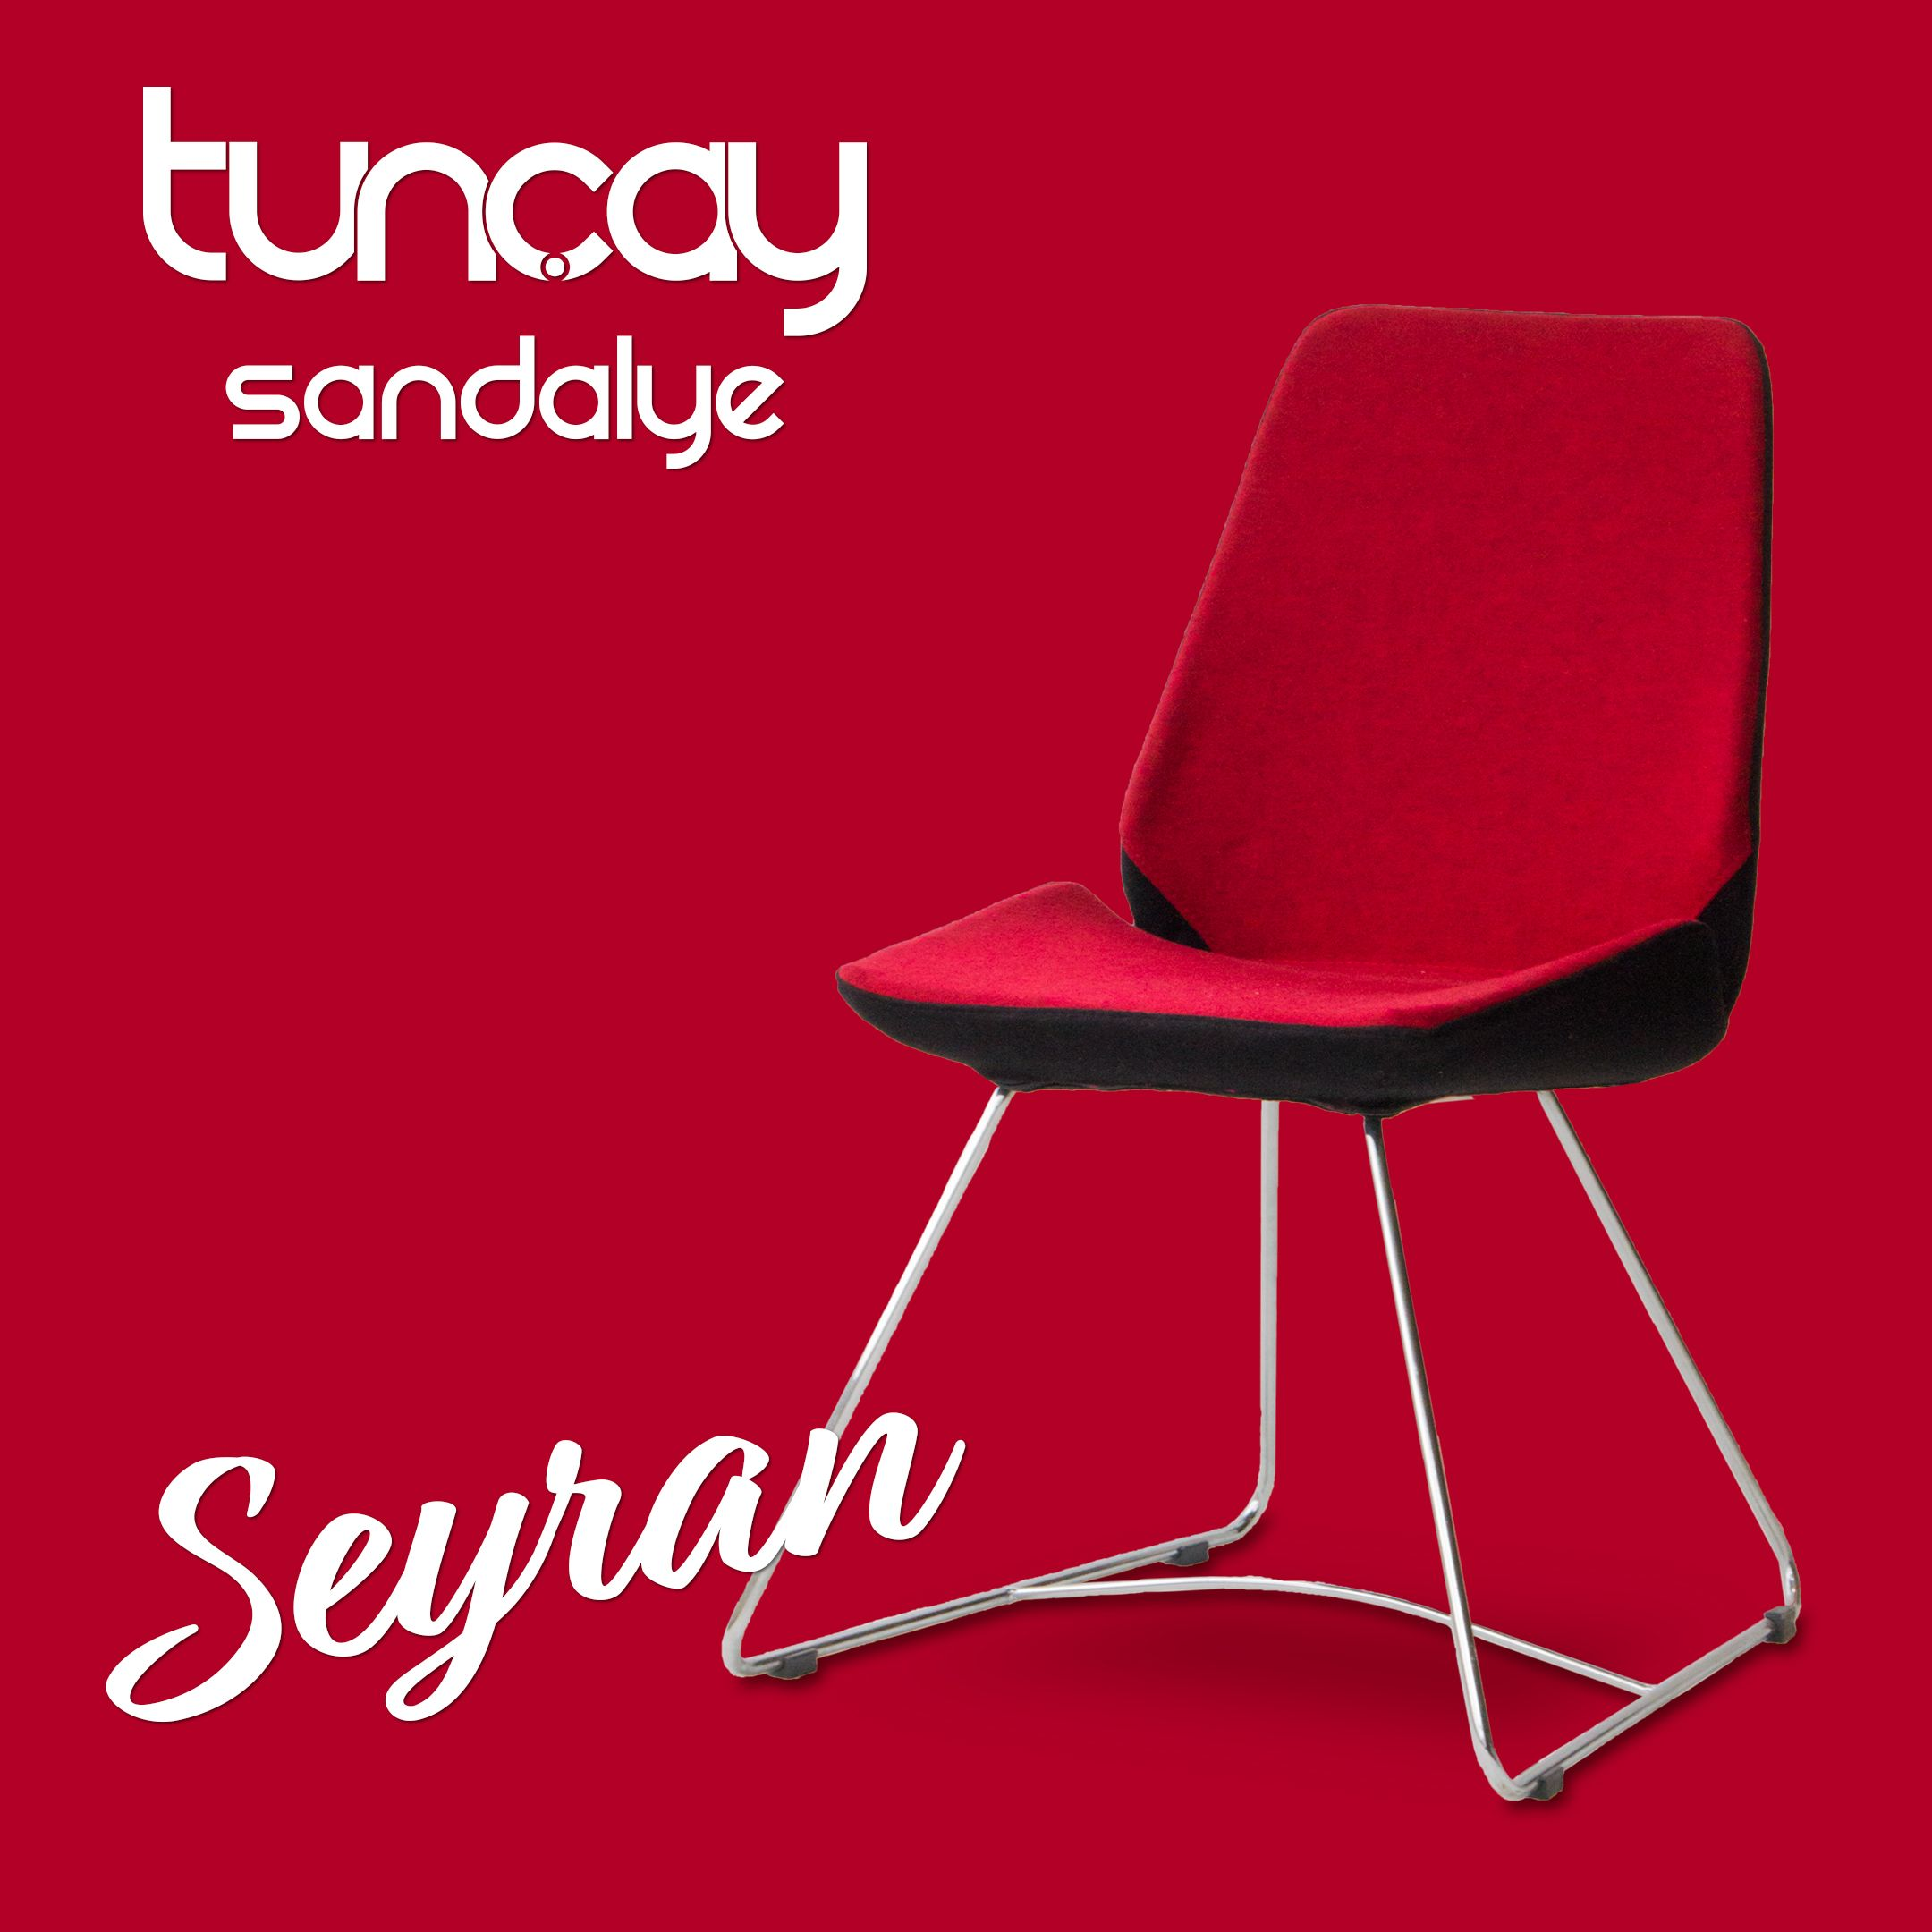 Seyran Furniture Mobilya Chair Sandalye Chairdesign Sandalyetasarim Koltuk Sofadesign Cafe Cafedesign Cafechairs Cafed Sandalye Mobilya Furniture